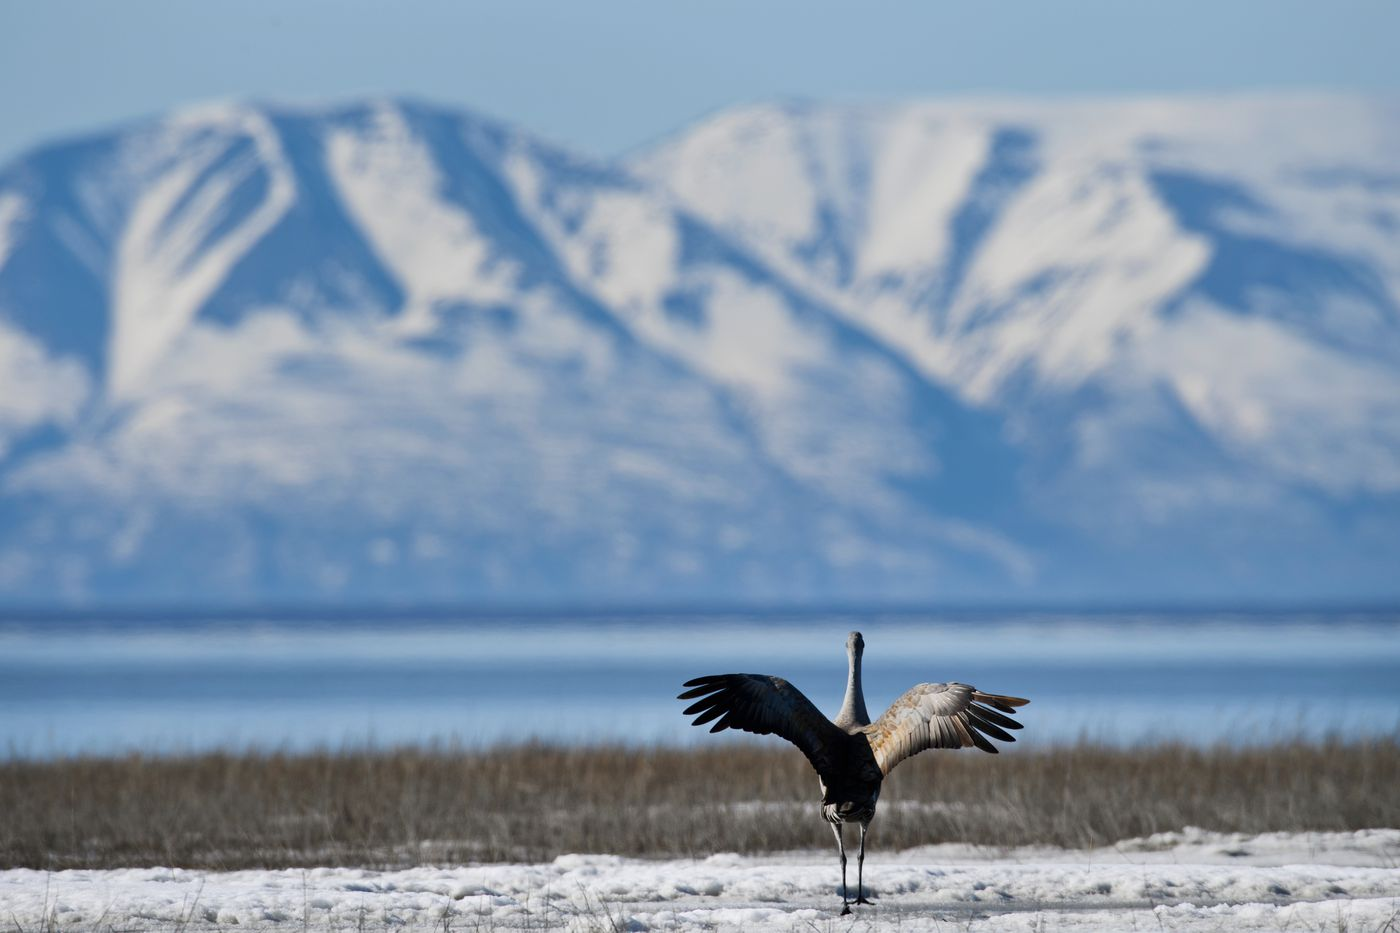 Sandhill cranes walk on the mud and ice of the Anchorage Coastal Wildlife Refuge on April 20, 2021. (Marc Lester / ADN)